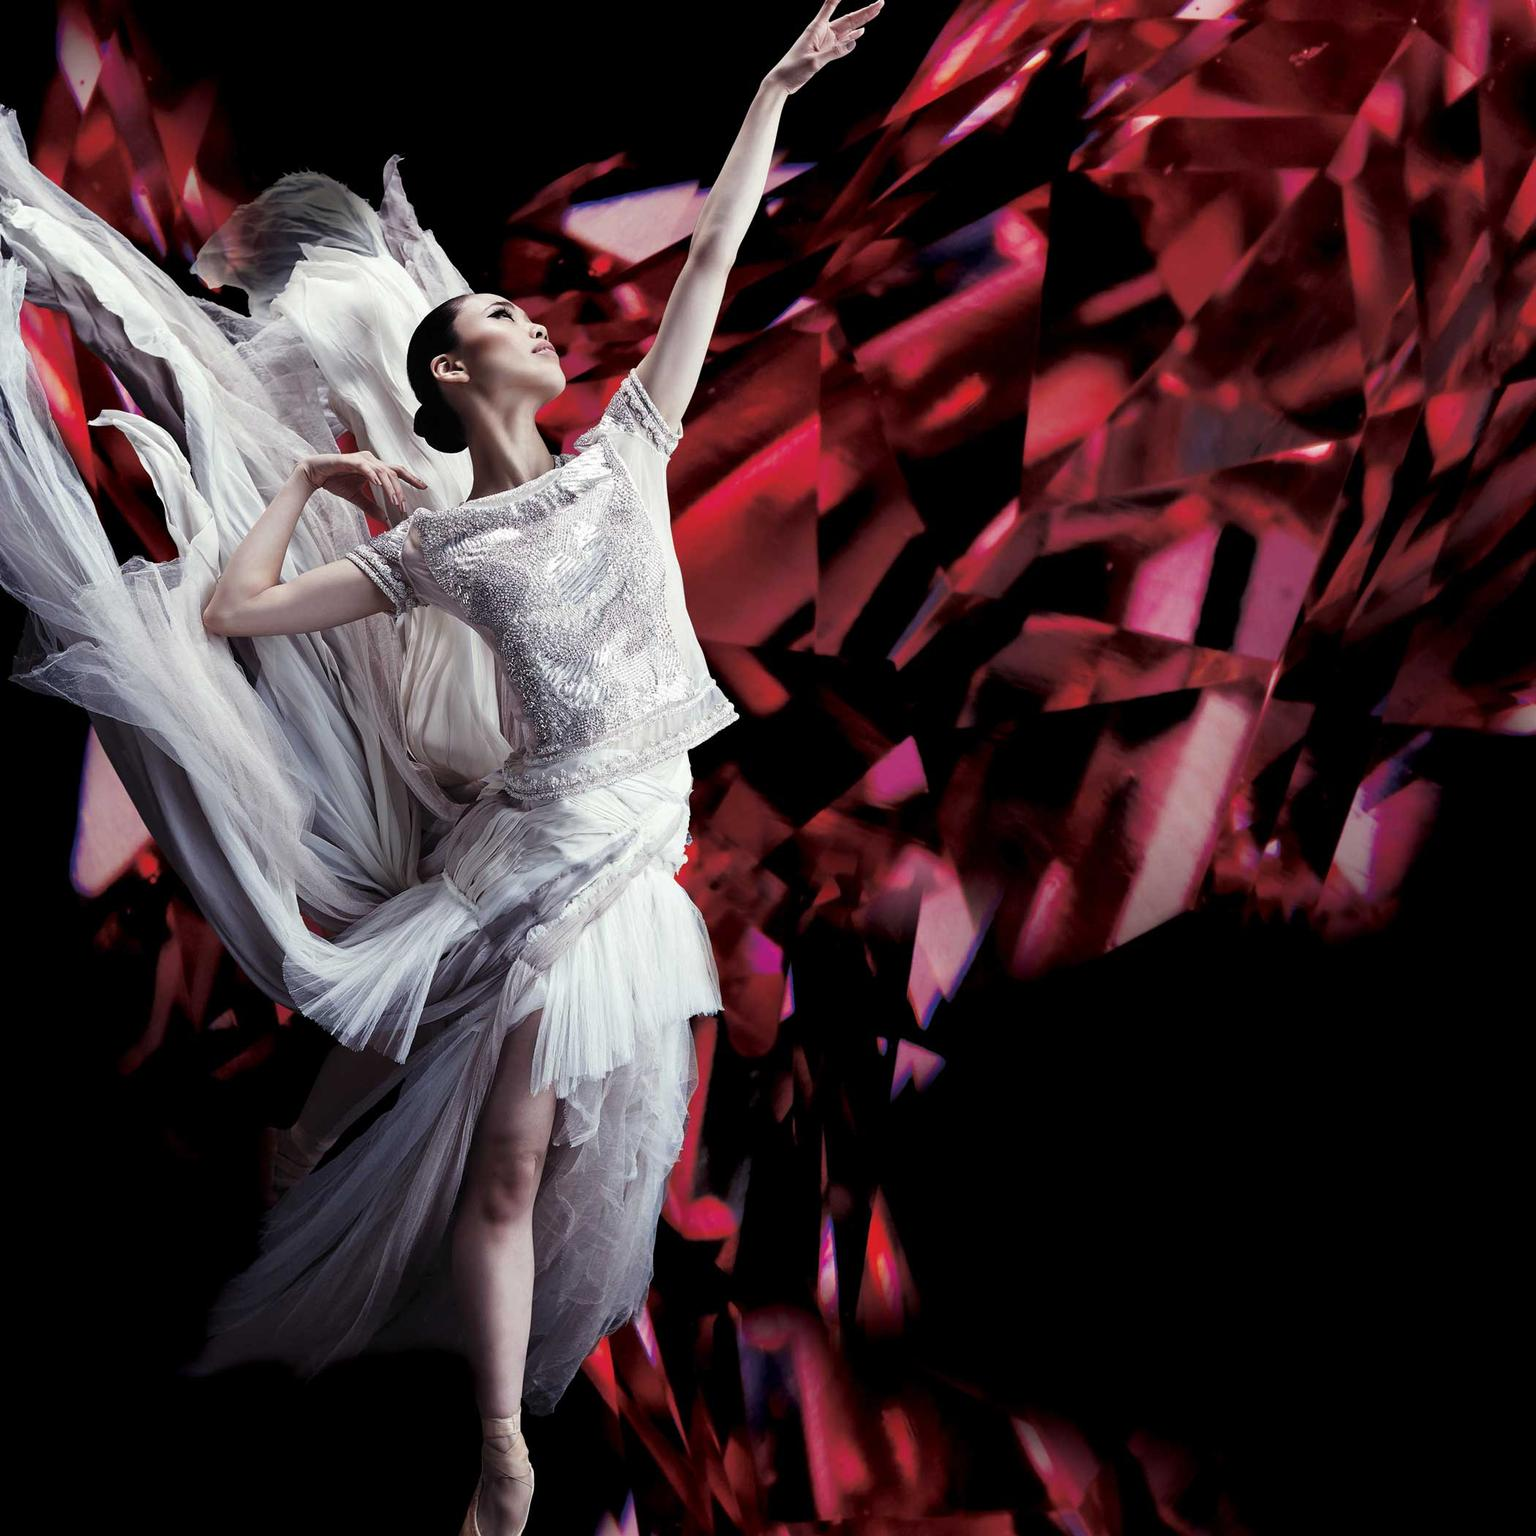 Argyle Pink Diamonds has partnered with the Australian Ballet in its 2015 Year of Beauty and Transformation